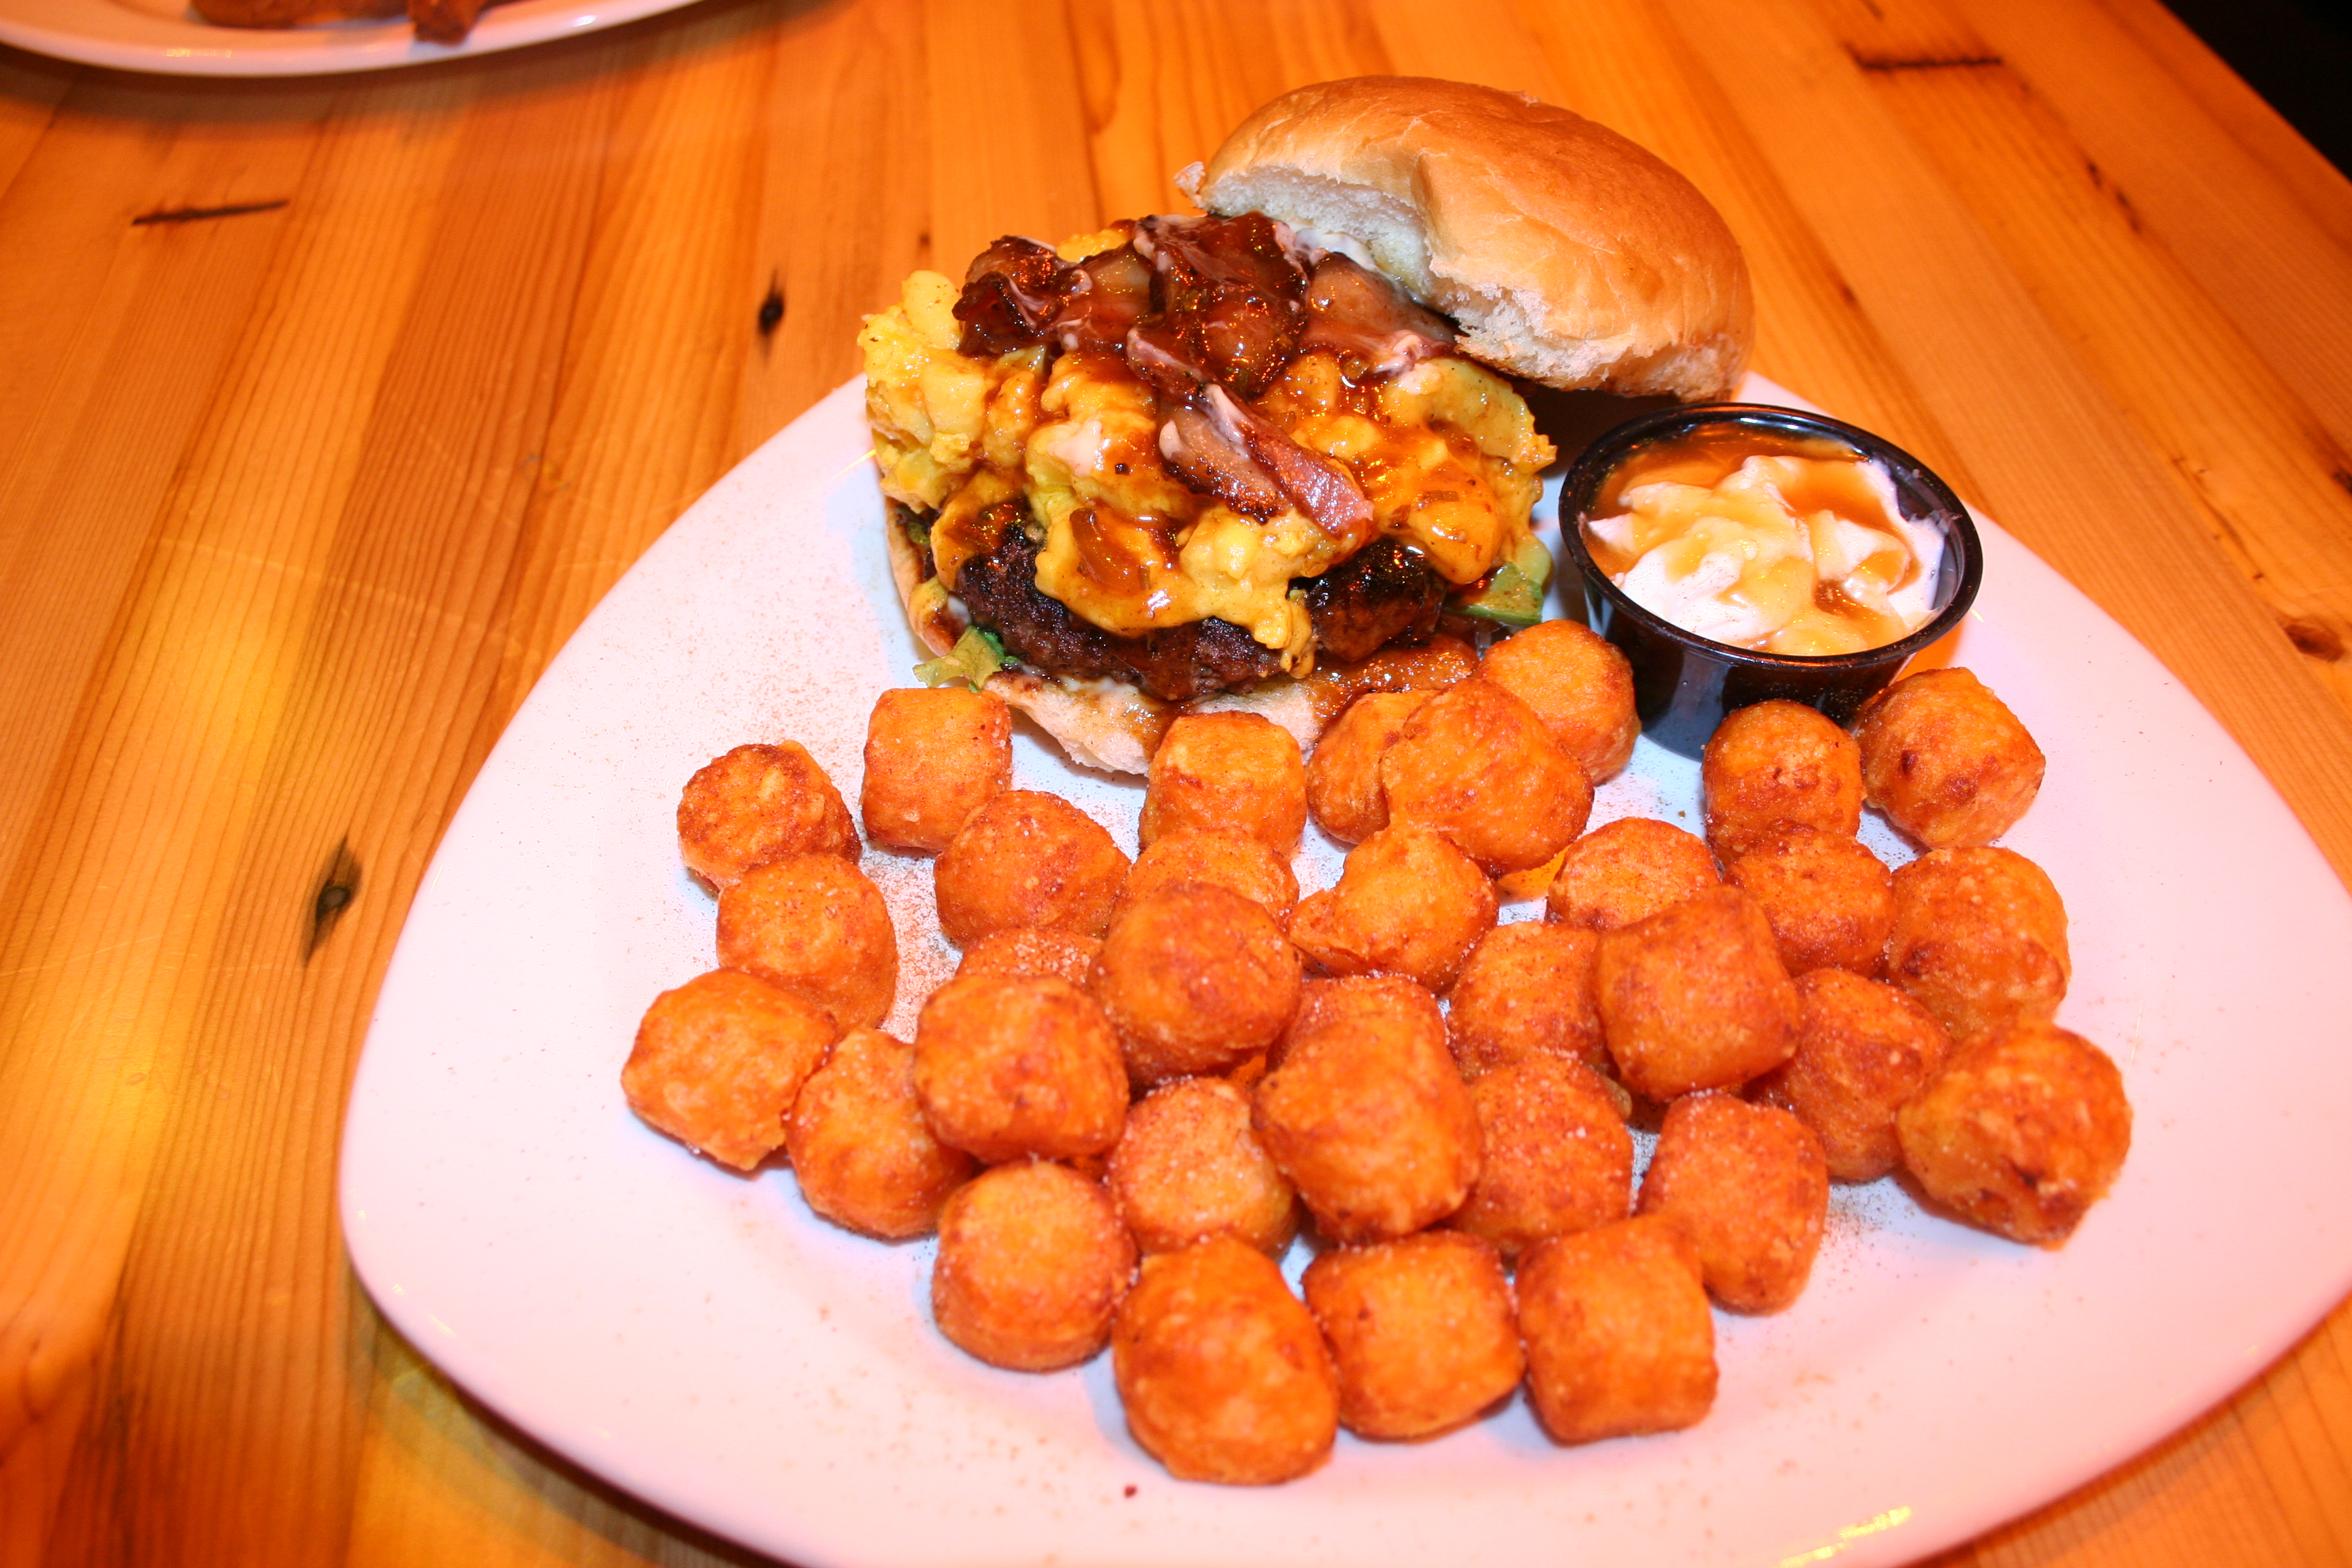 The mac n cheese burger with sweet potato tots and whipped cream/maple syrup dipping sauce. (Photo: Mark Heckathorn/DC on Heels)